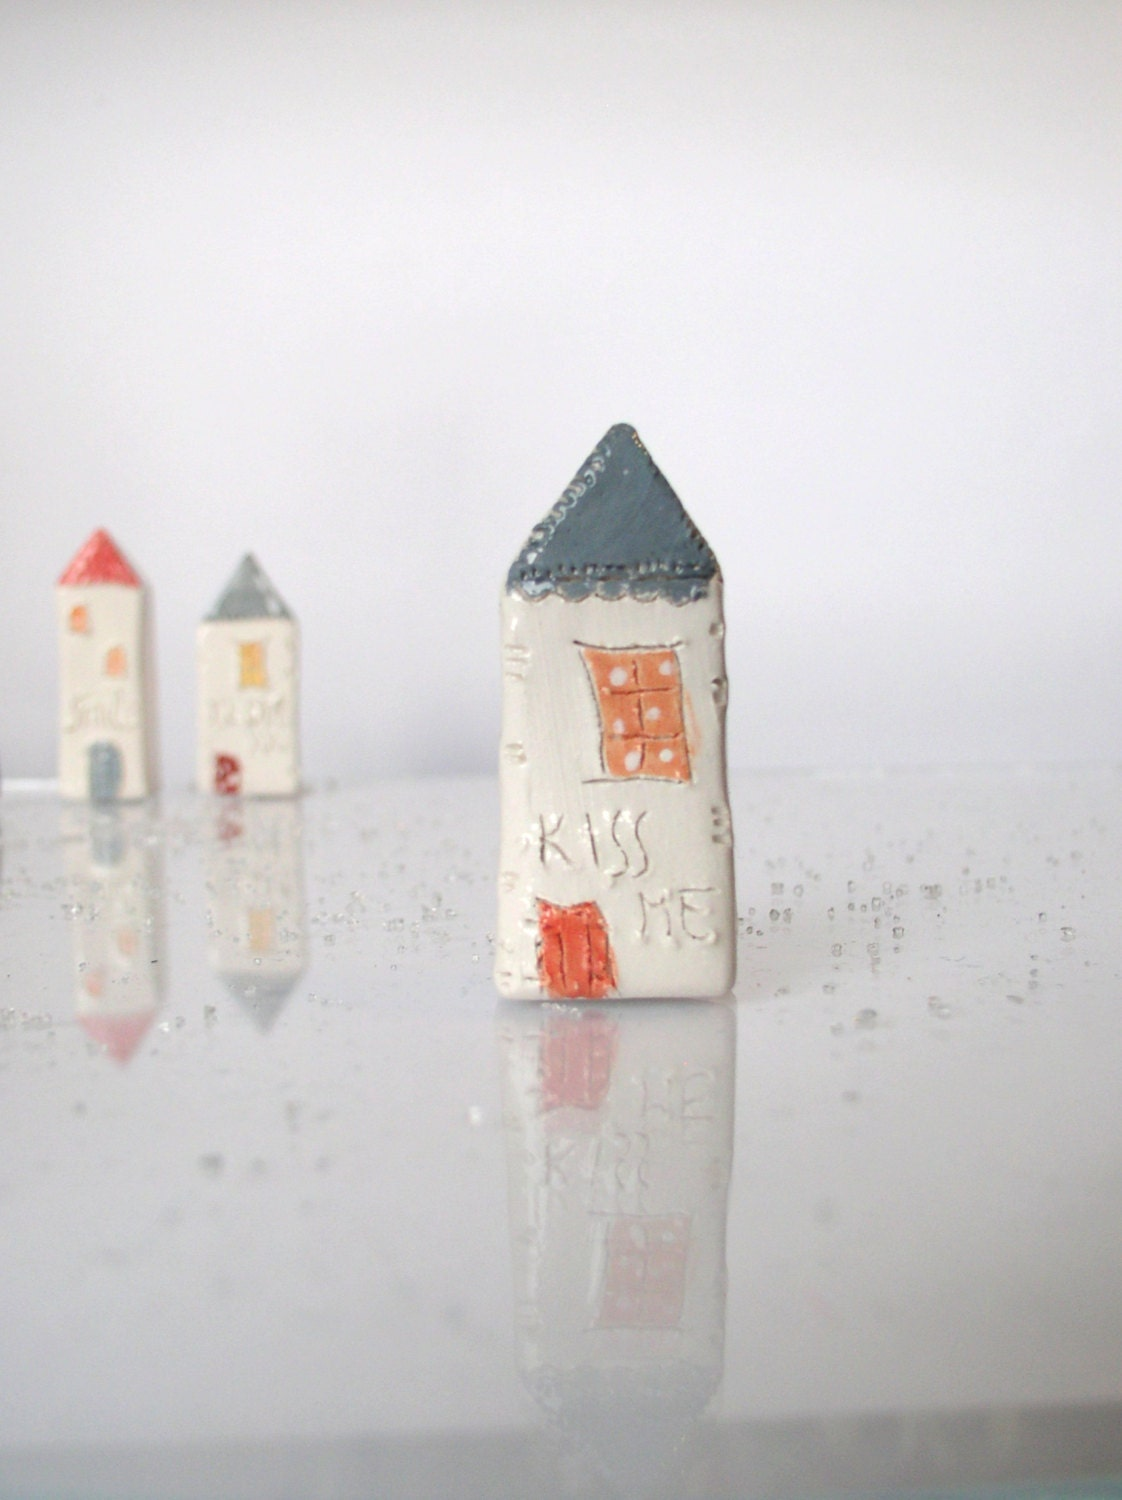 KISS ME...My little Clay House - Handmade miniature ceramics house - VitezArtGlassDesign